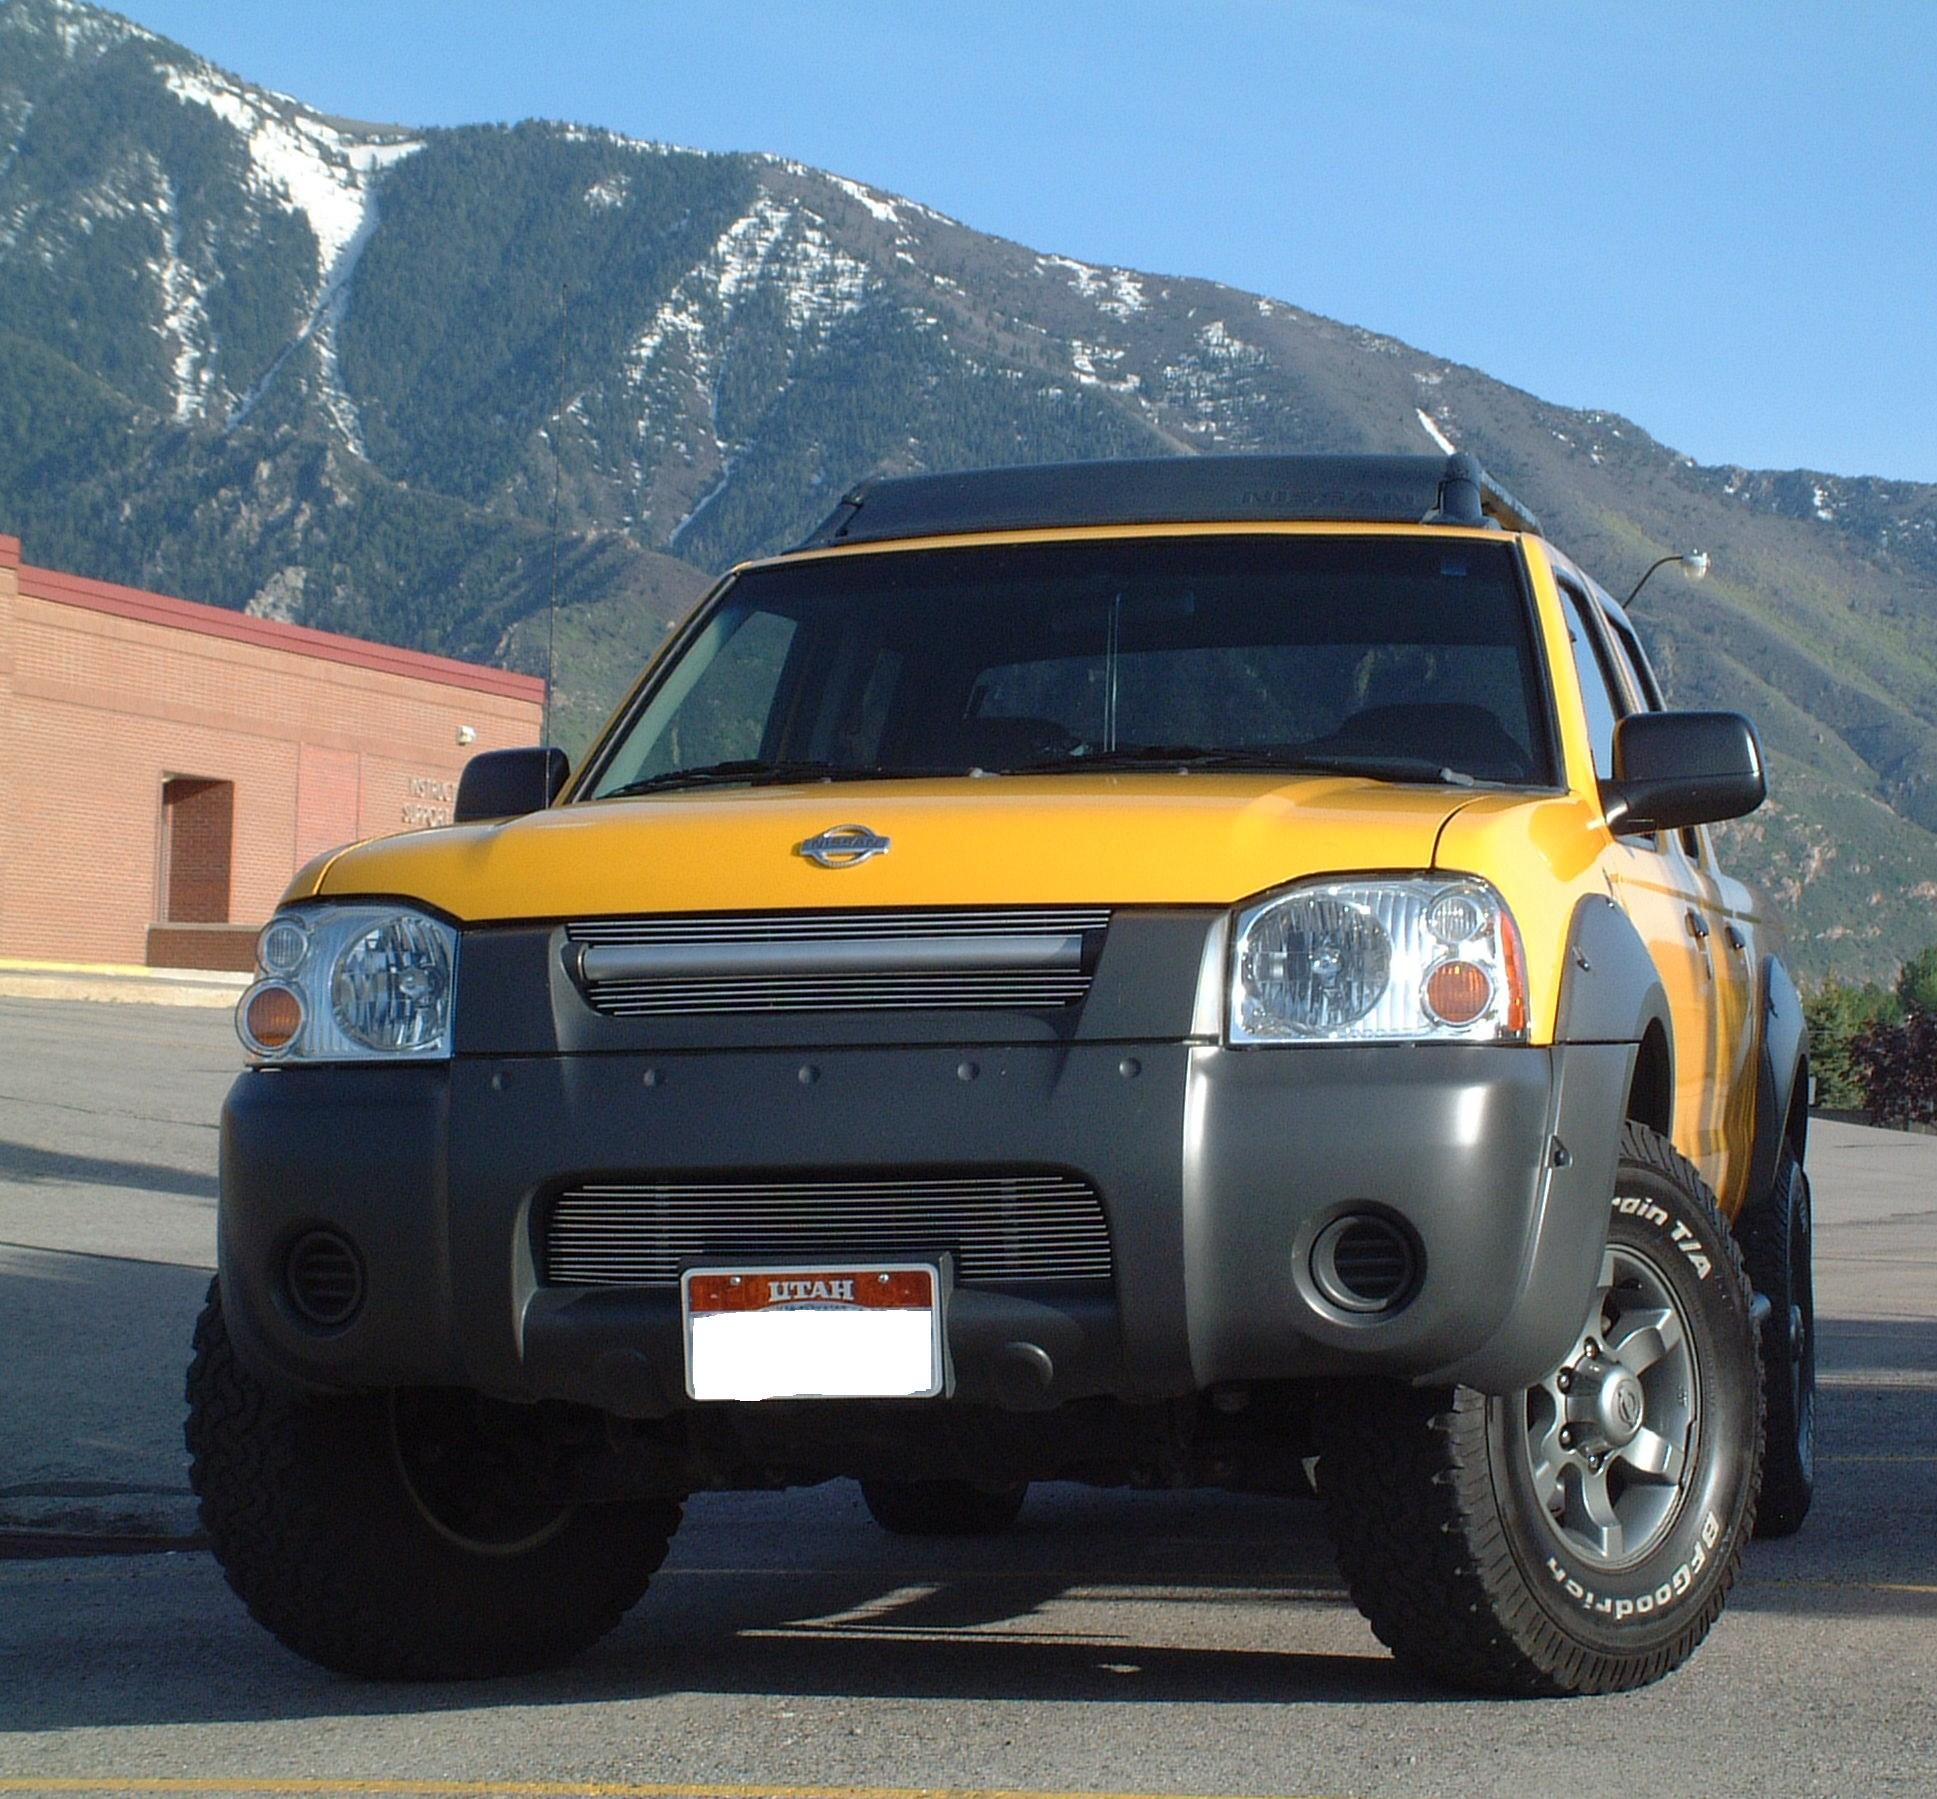 1998 Nissan Frontier Regular Cab Suspension: 01utahfronty's 2001 Nissan Frontier Regular Cab In Sandy, UT